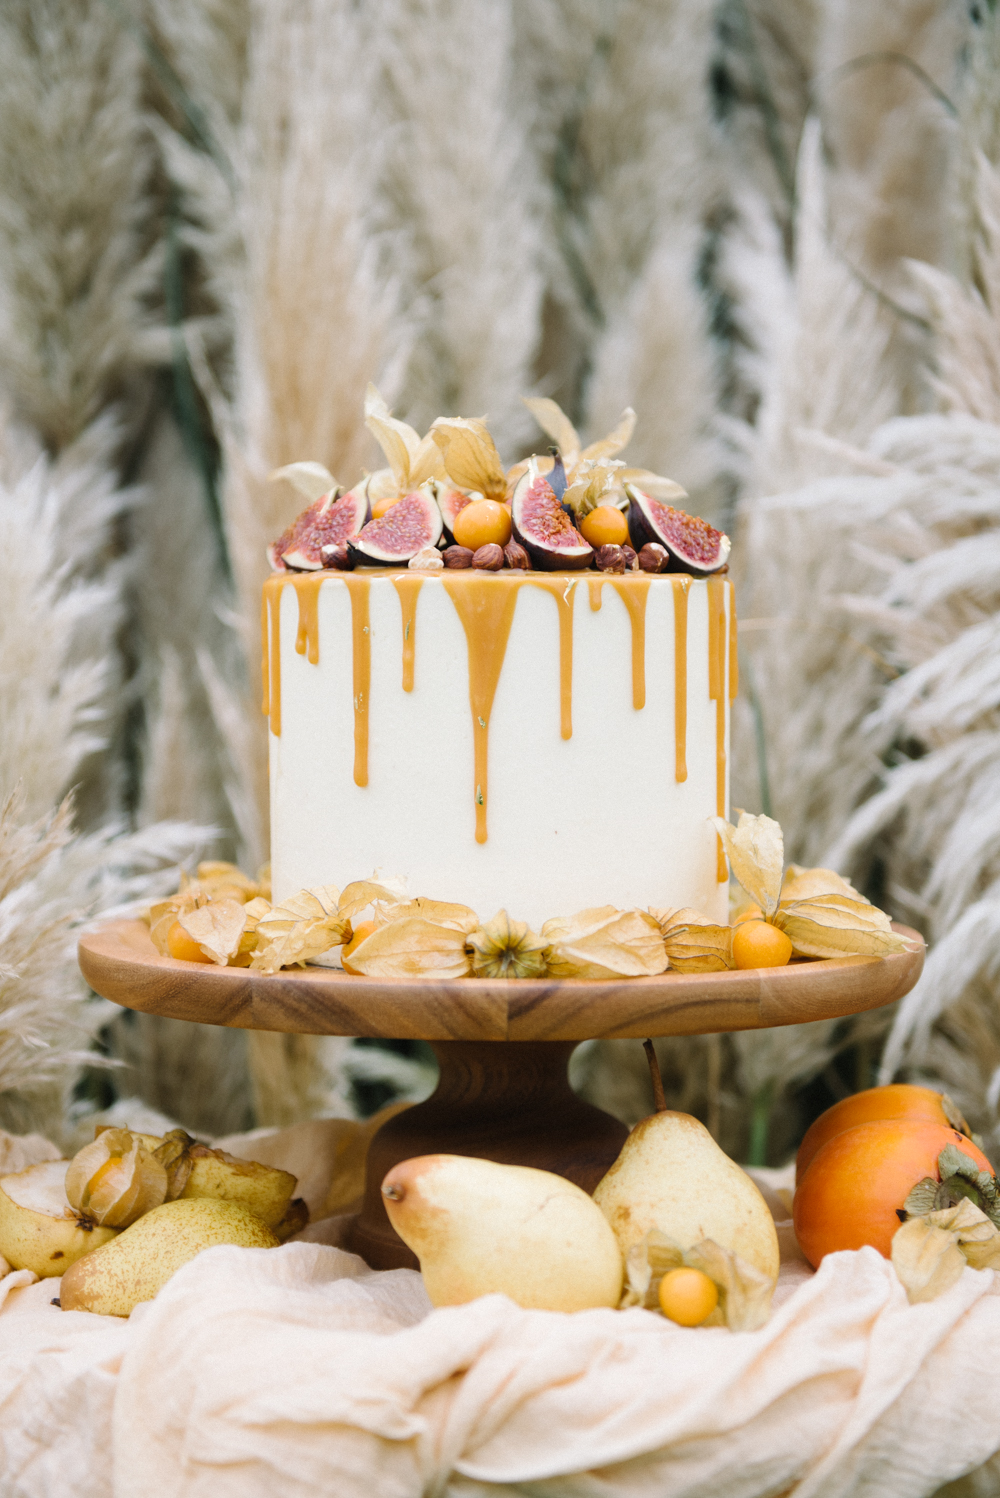 The wedding cake was a salted caramel one with drip icing, fresh figs and berries